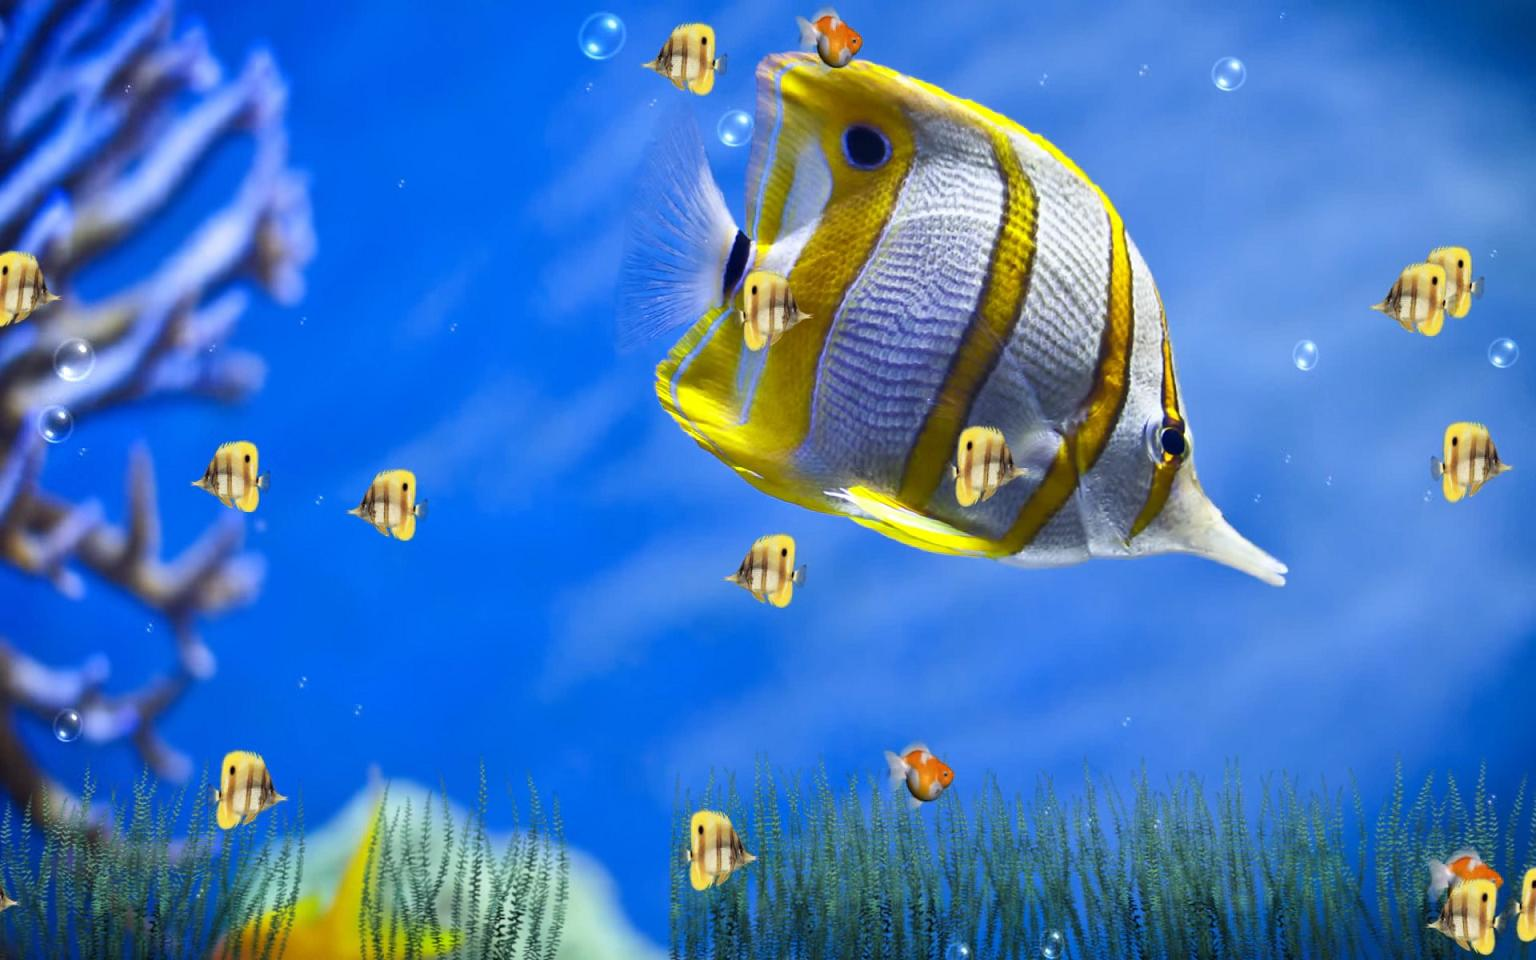 HmoO5Jz8  Qs1600animatedwallpapersoffishinhdfordesktopjpeg 1536x960